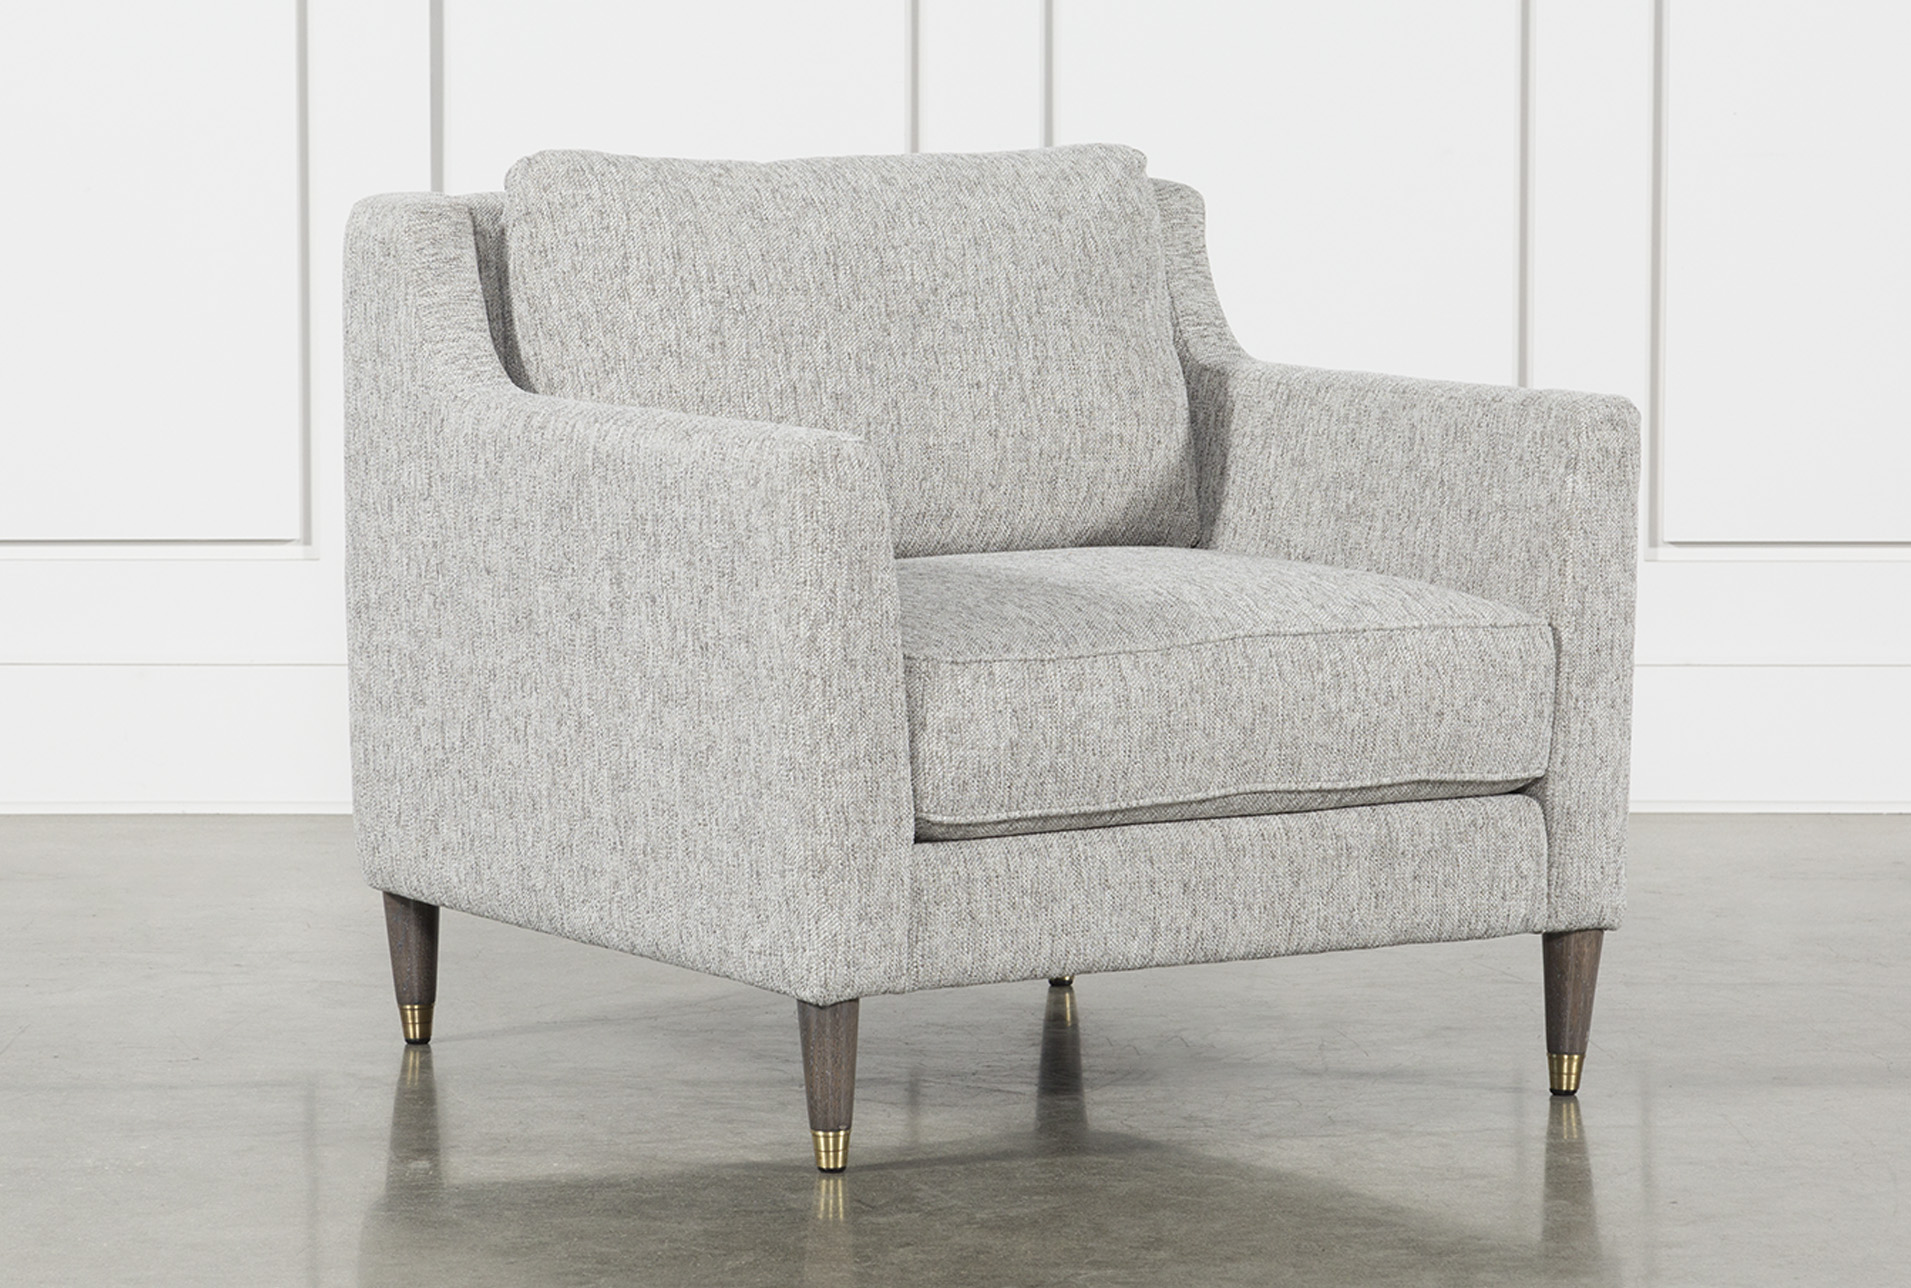 Ames Arm Chair By Nate Berkus And Jeremiah Brent | Living Spaces